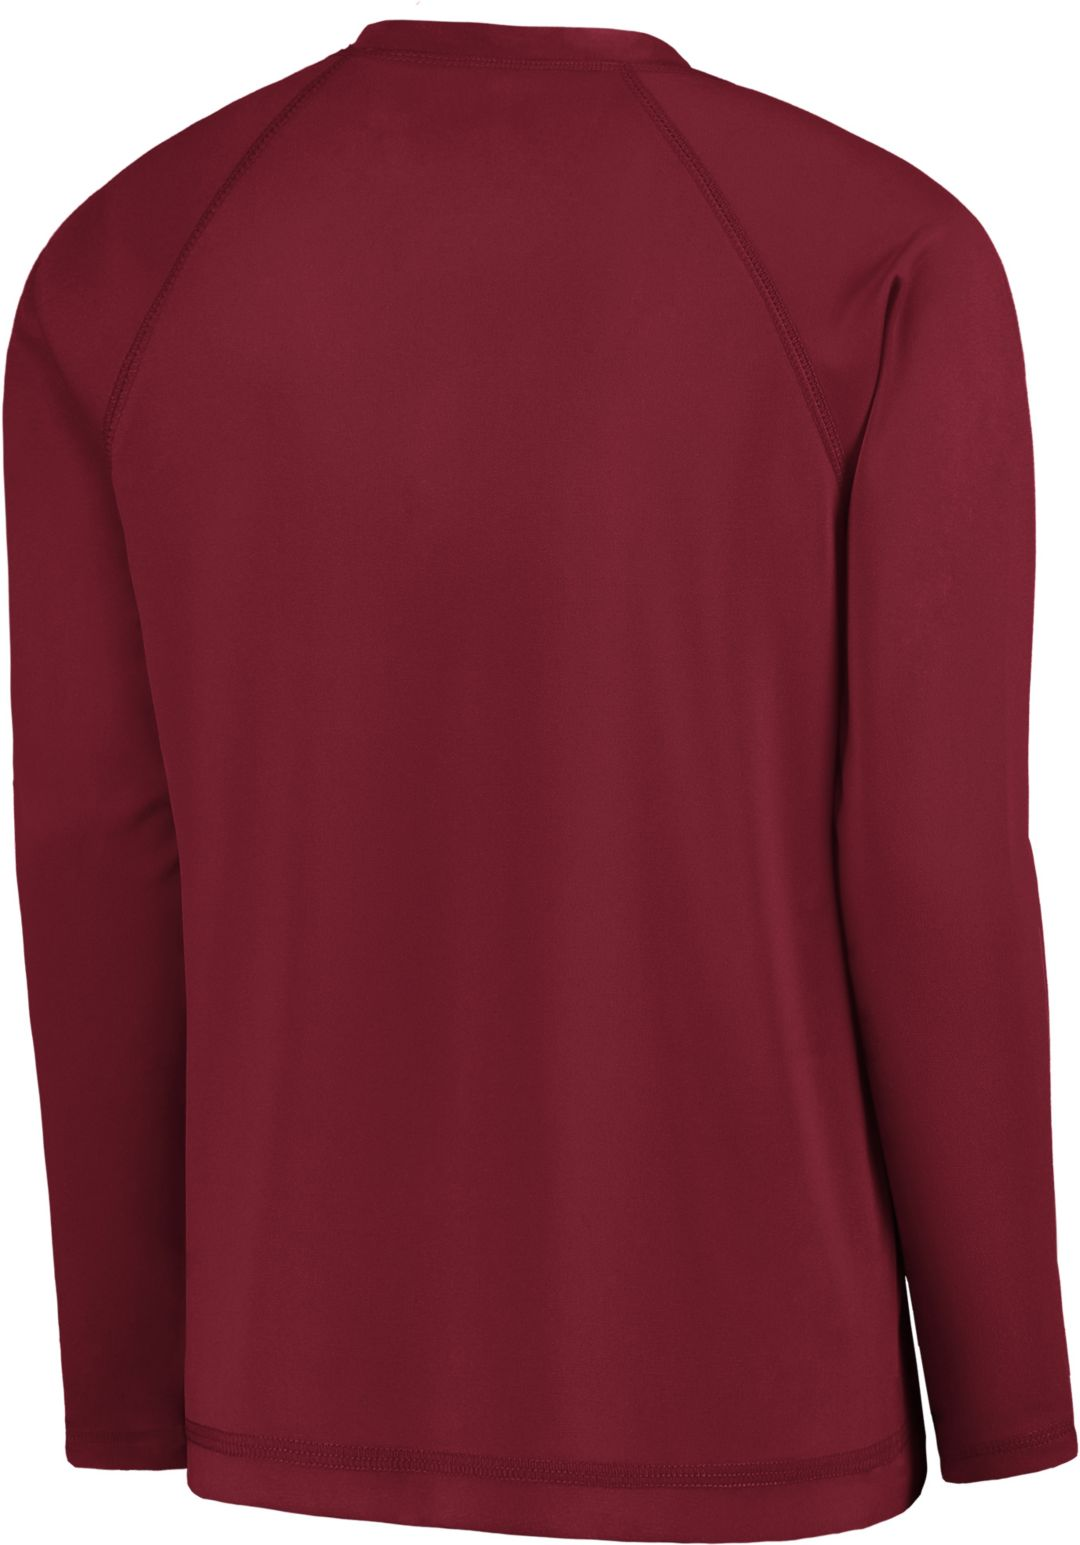 finest selection 36c7c 7f7bc MLS Youth Colorado Rapids Vital Maroon Long Sleeve Shirt. noImageFound.  Previous. 1. 2